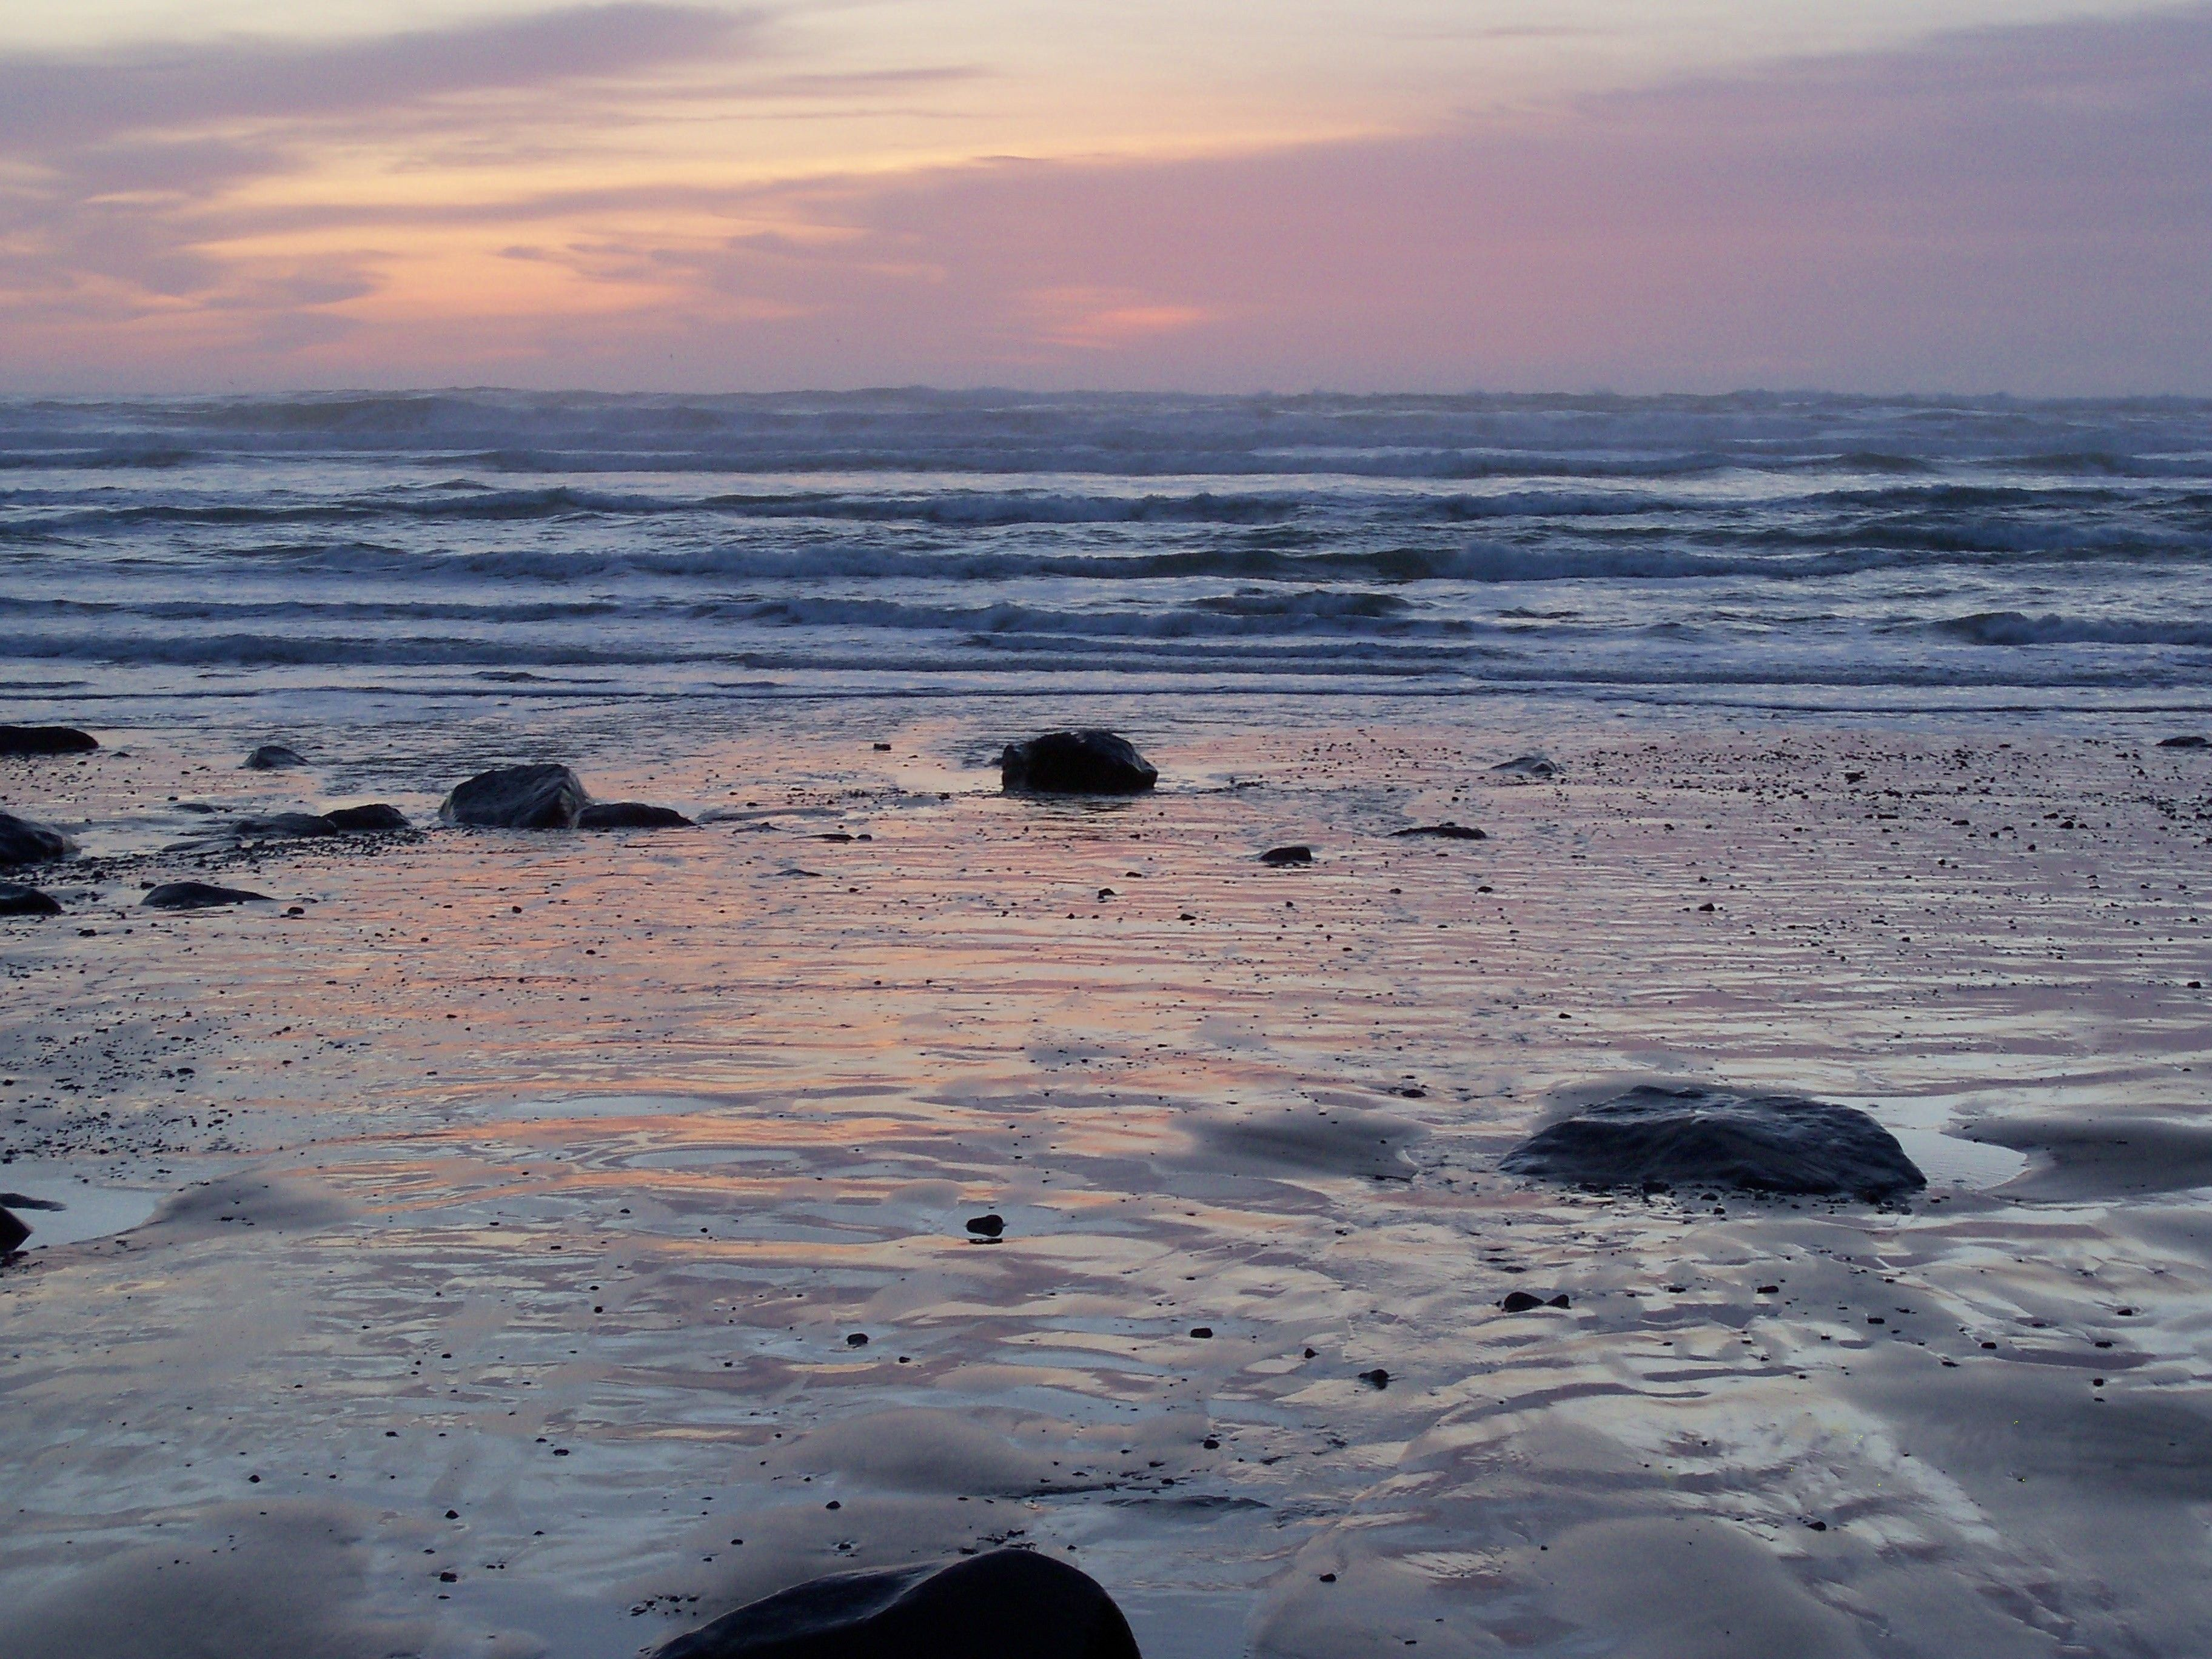 Rocks on the shore at sunset.